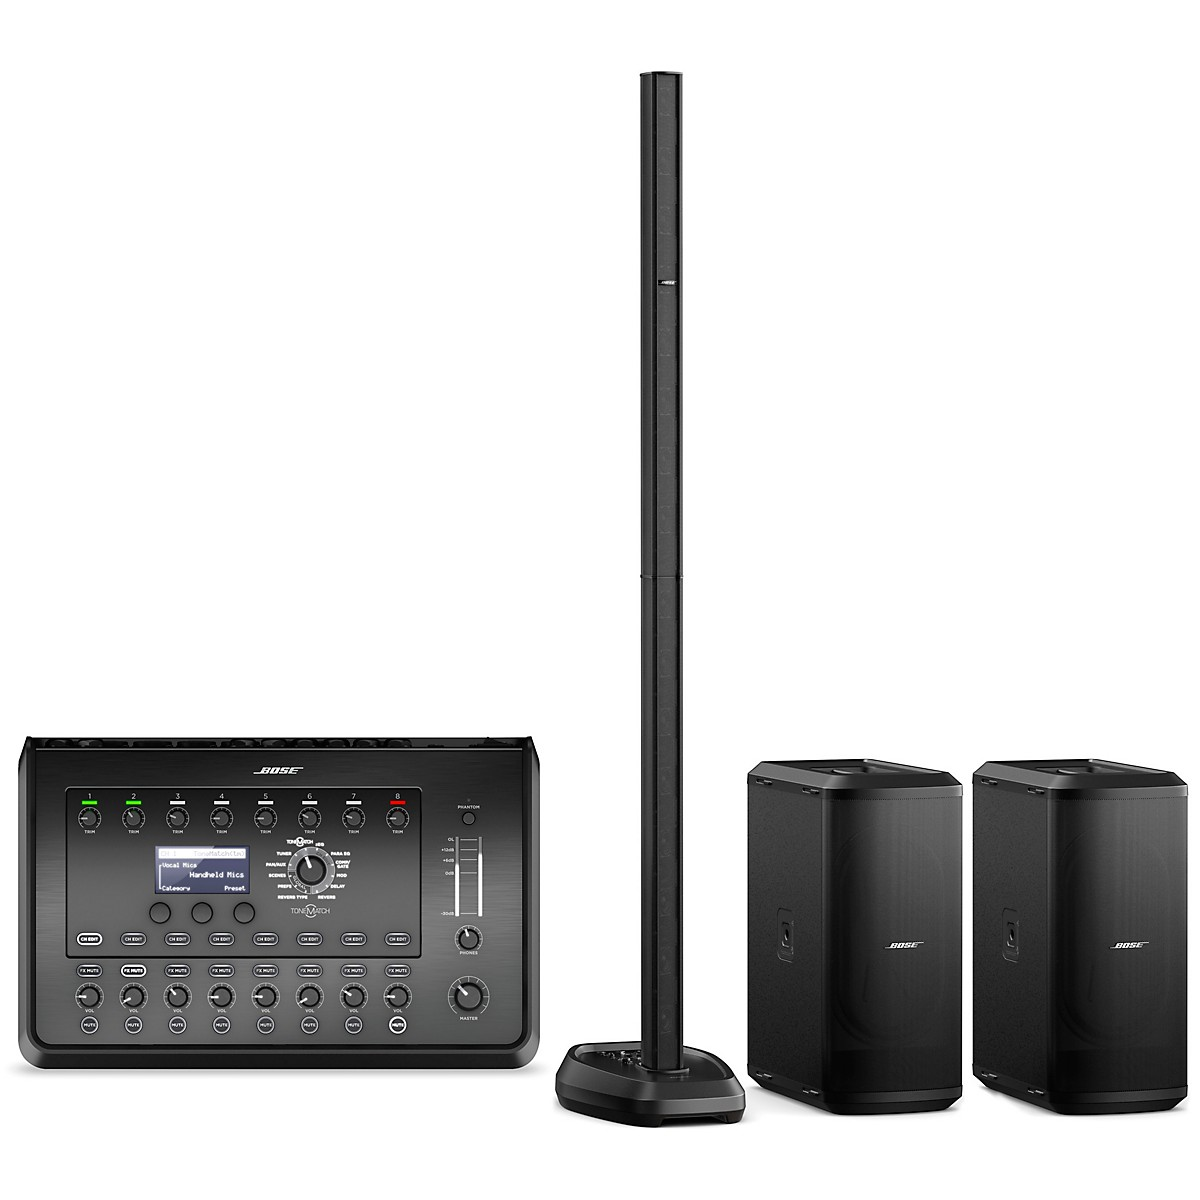 Bose L1 Pro32 Portable PA With Dual Sub2 Powered Bass Modules and T8S Audio Engine